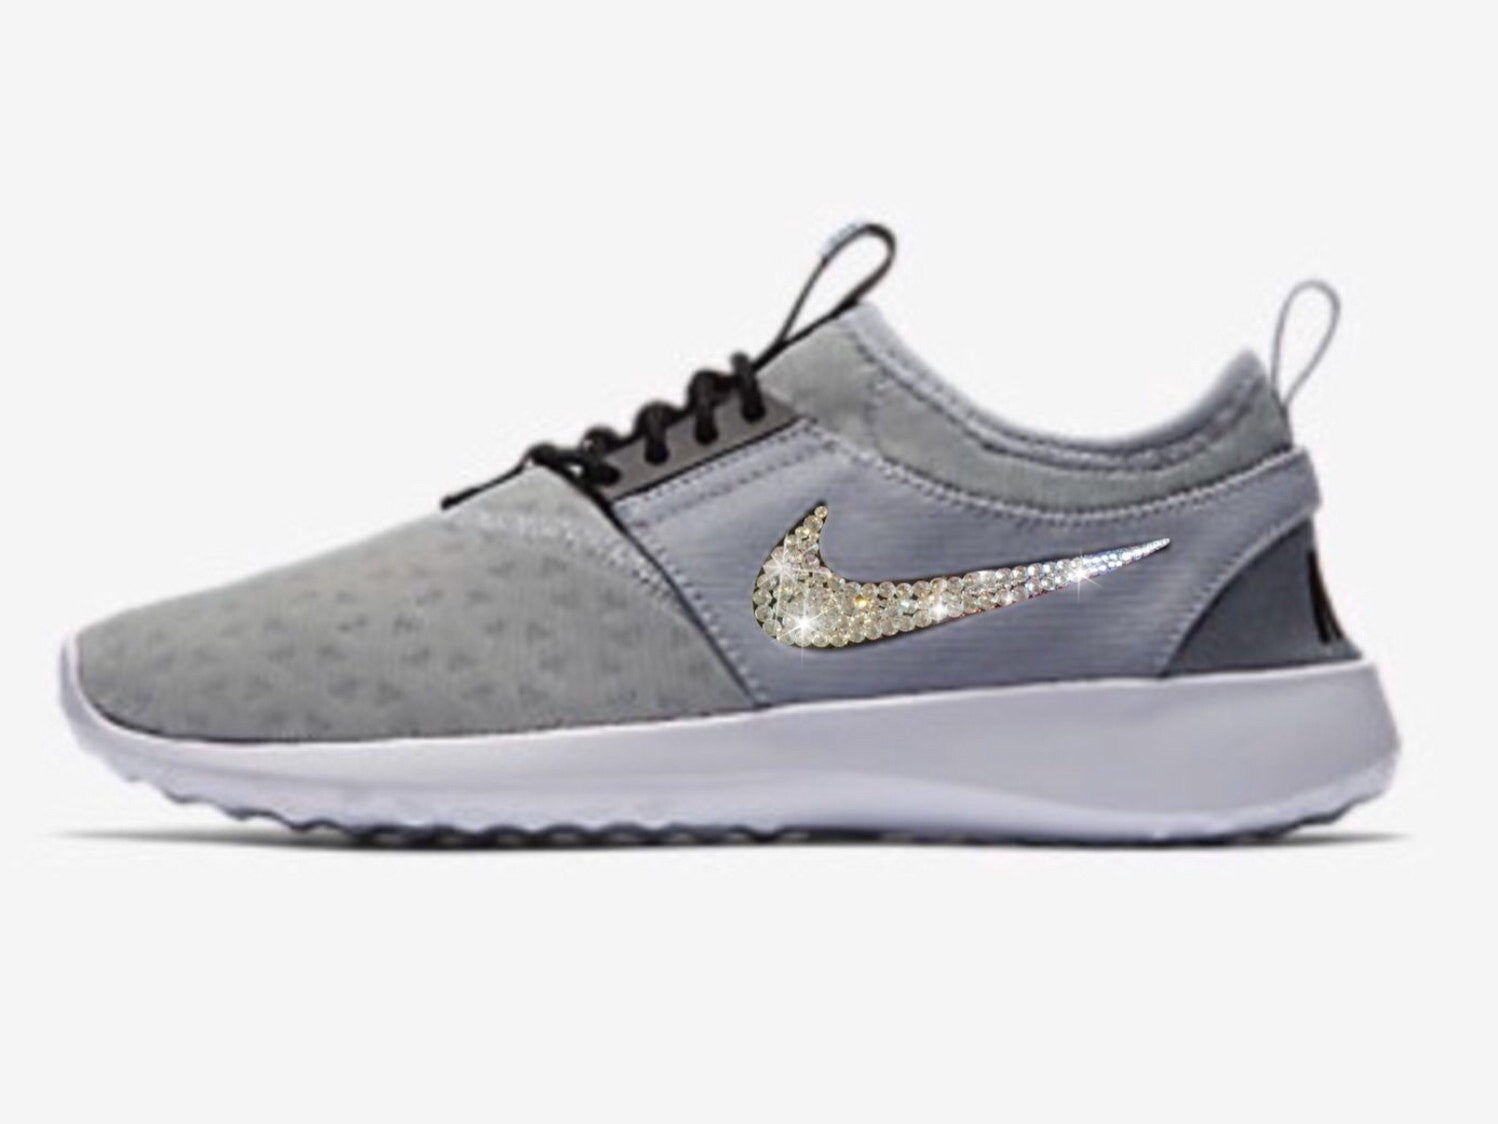 0214f59ab7b4 Bling Nike Juvenate Shoes with Swarovski Crystals   Wolf Grey   Bedazzled  w 100% ...